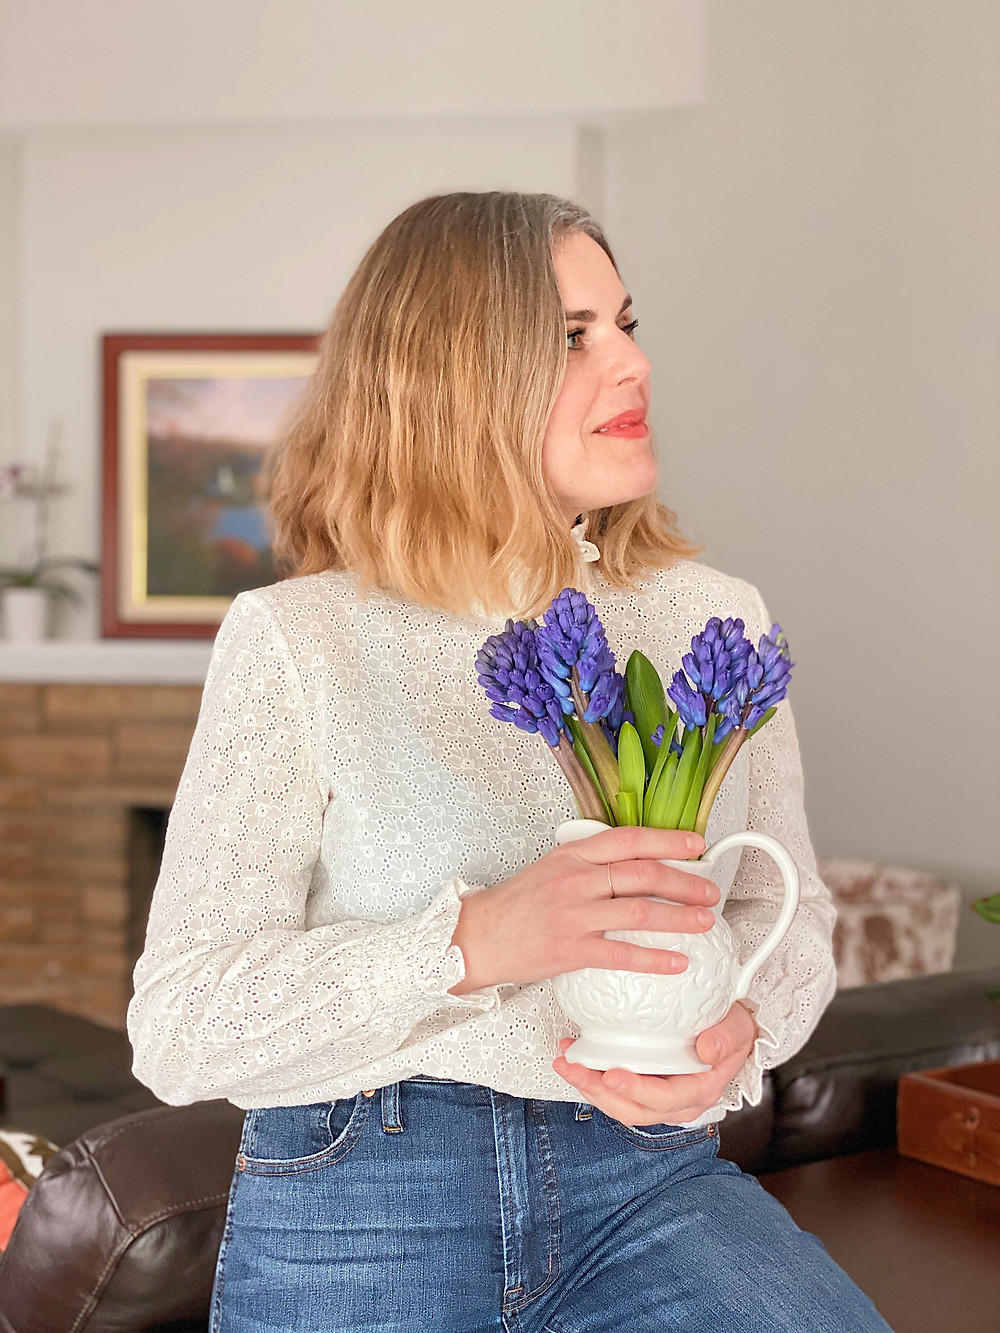 Blond woman smiling and holding a bouquet of hyacinth